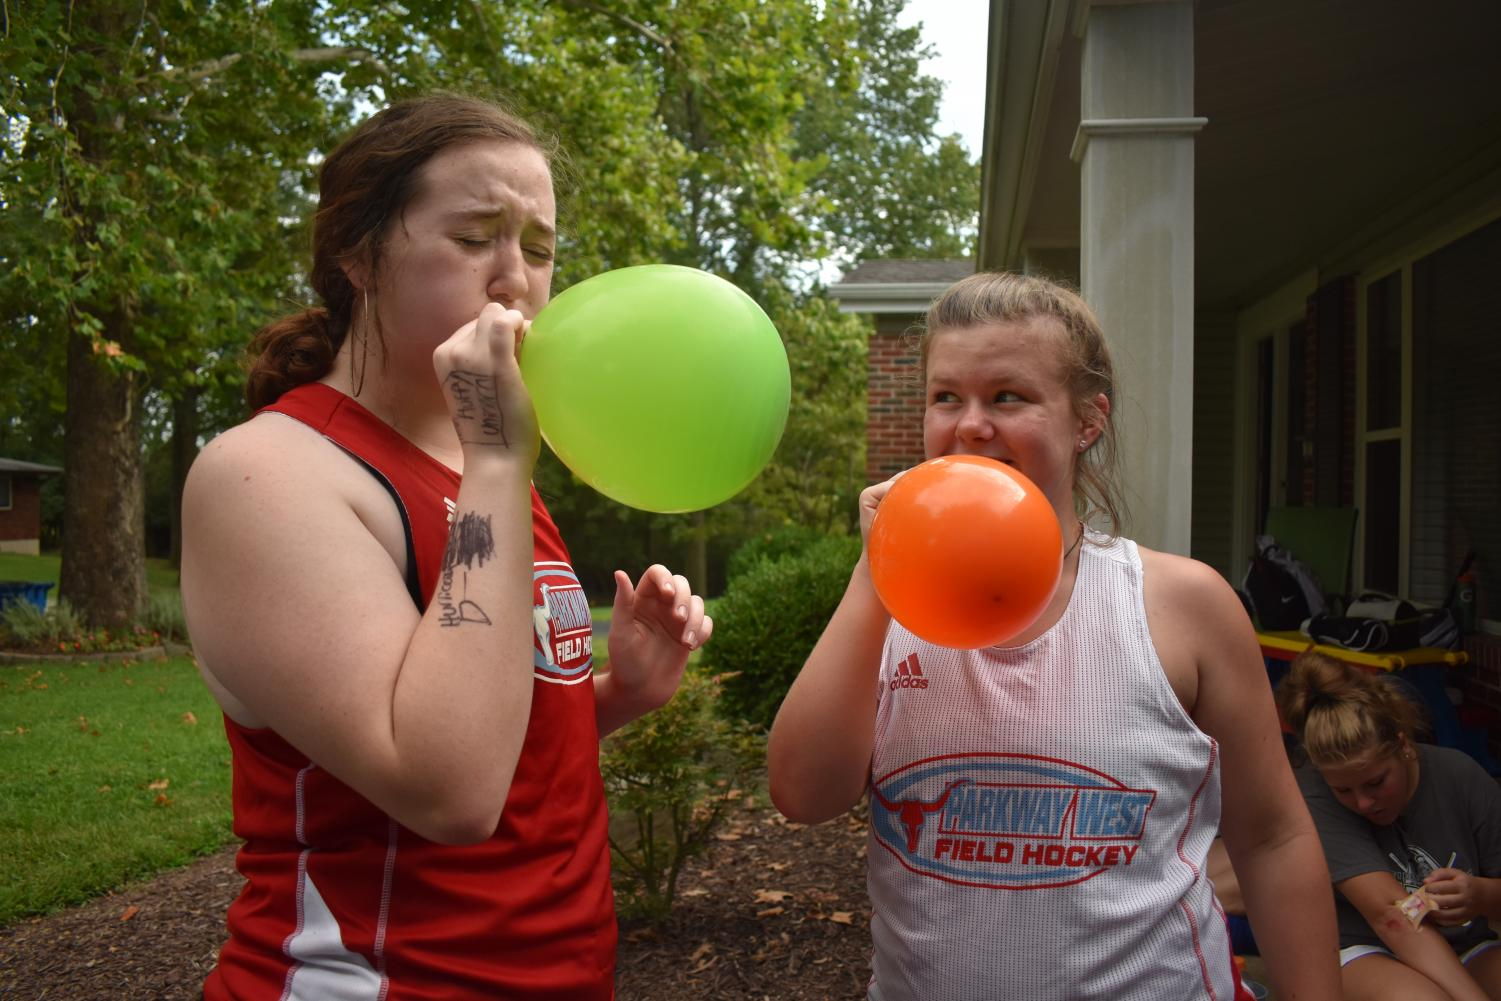 """At a field hockey team dinner, sophomores Sarah Kline and Annie Zahoran blow up another balloon for a competition to see who could not let the balloon drop to the floor on Sept. 2. Members of the field hockey program met at Coach Dawn Callahan's house for a team dinner of Italian food. """"We were playing keep it up with the balloons as a competition between our three teams, but we ended up popping all of them. I was really struggling [to blow the balloons up] but we ended up having a lot of fun anyways."""""""